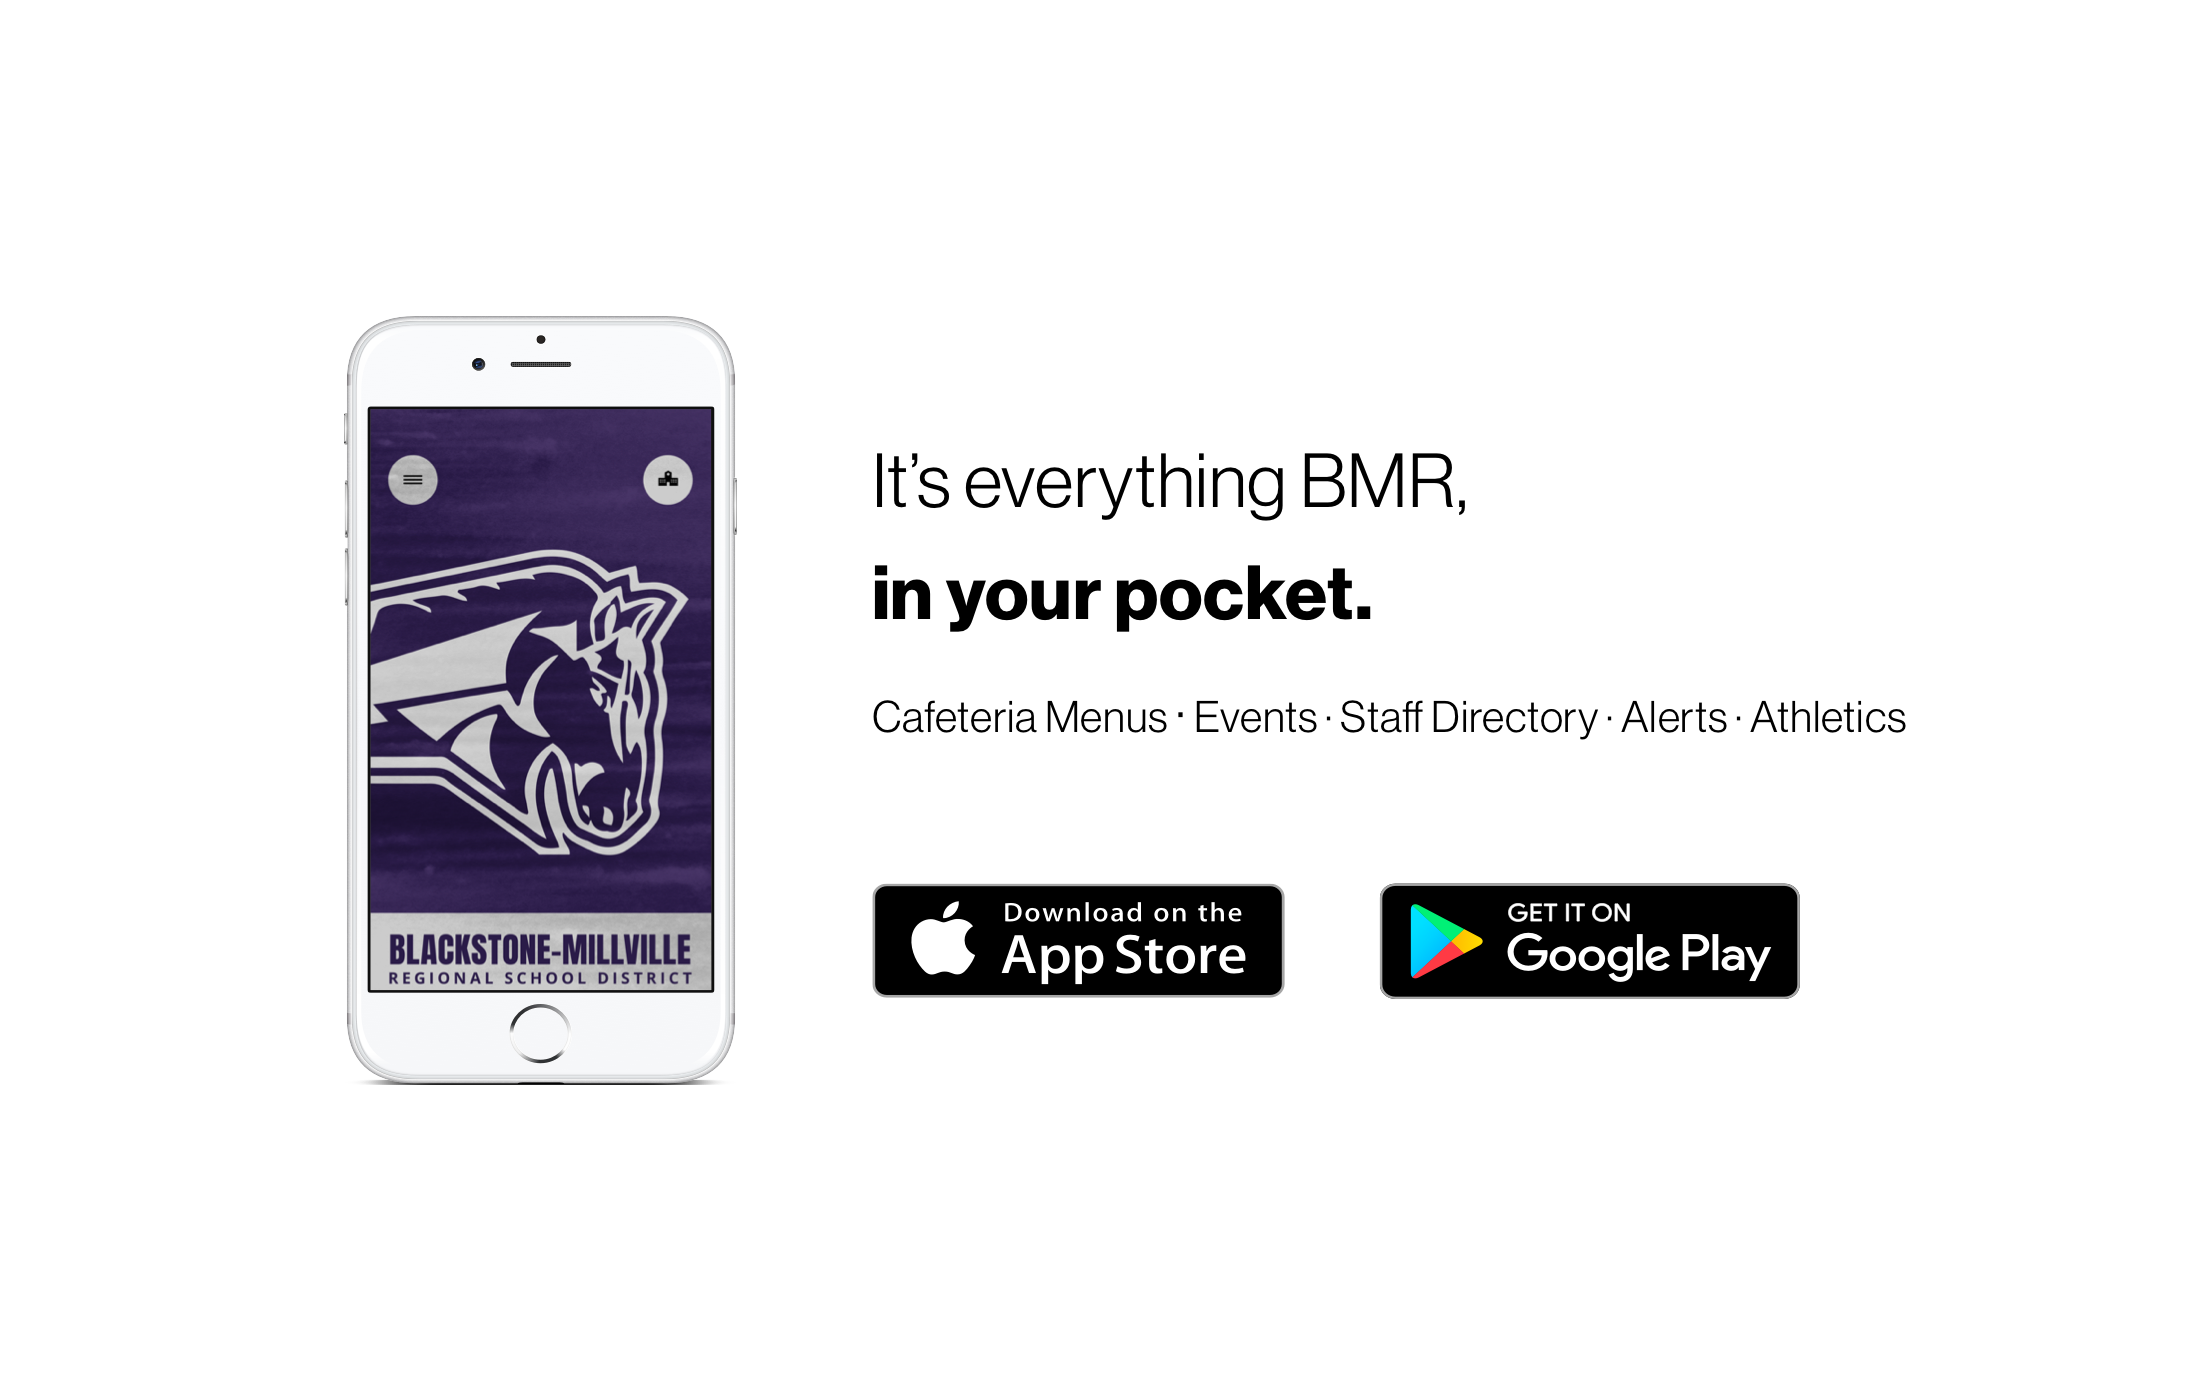 Download our schools new app to find out what's happening at Blackstone-Millville Regional School District